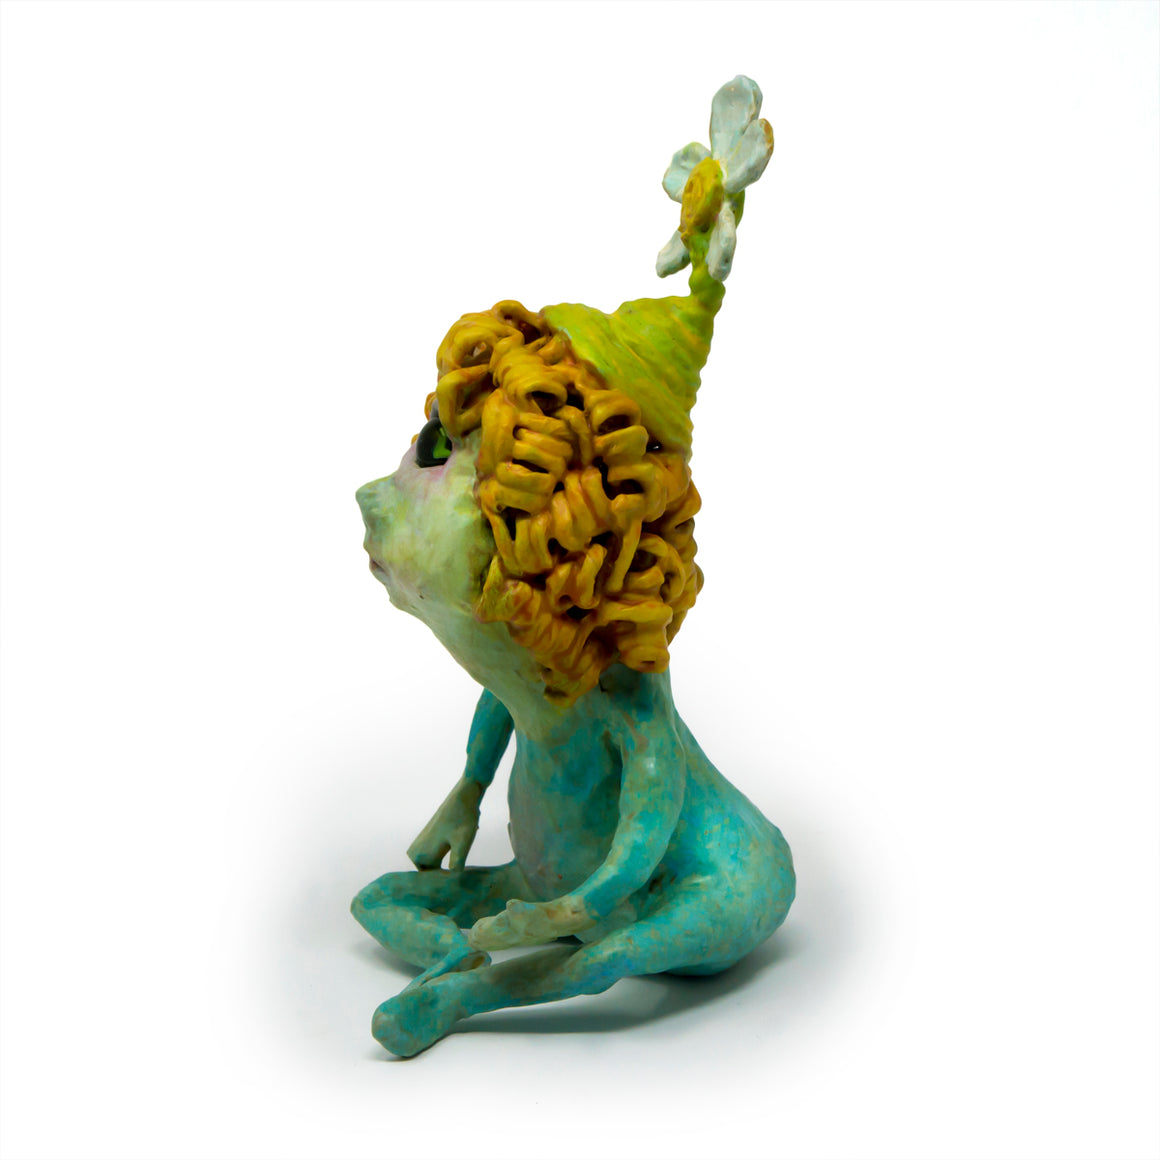 Spring, the Cyclops is an original, one-of-a-kind, hand-sculpted, hand-painted freestanding sculpture of a curly-haired cyclops wearing a blue onsie and a flower hat.